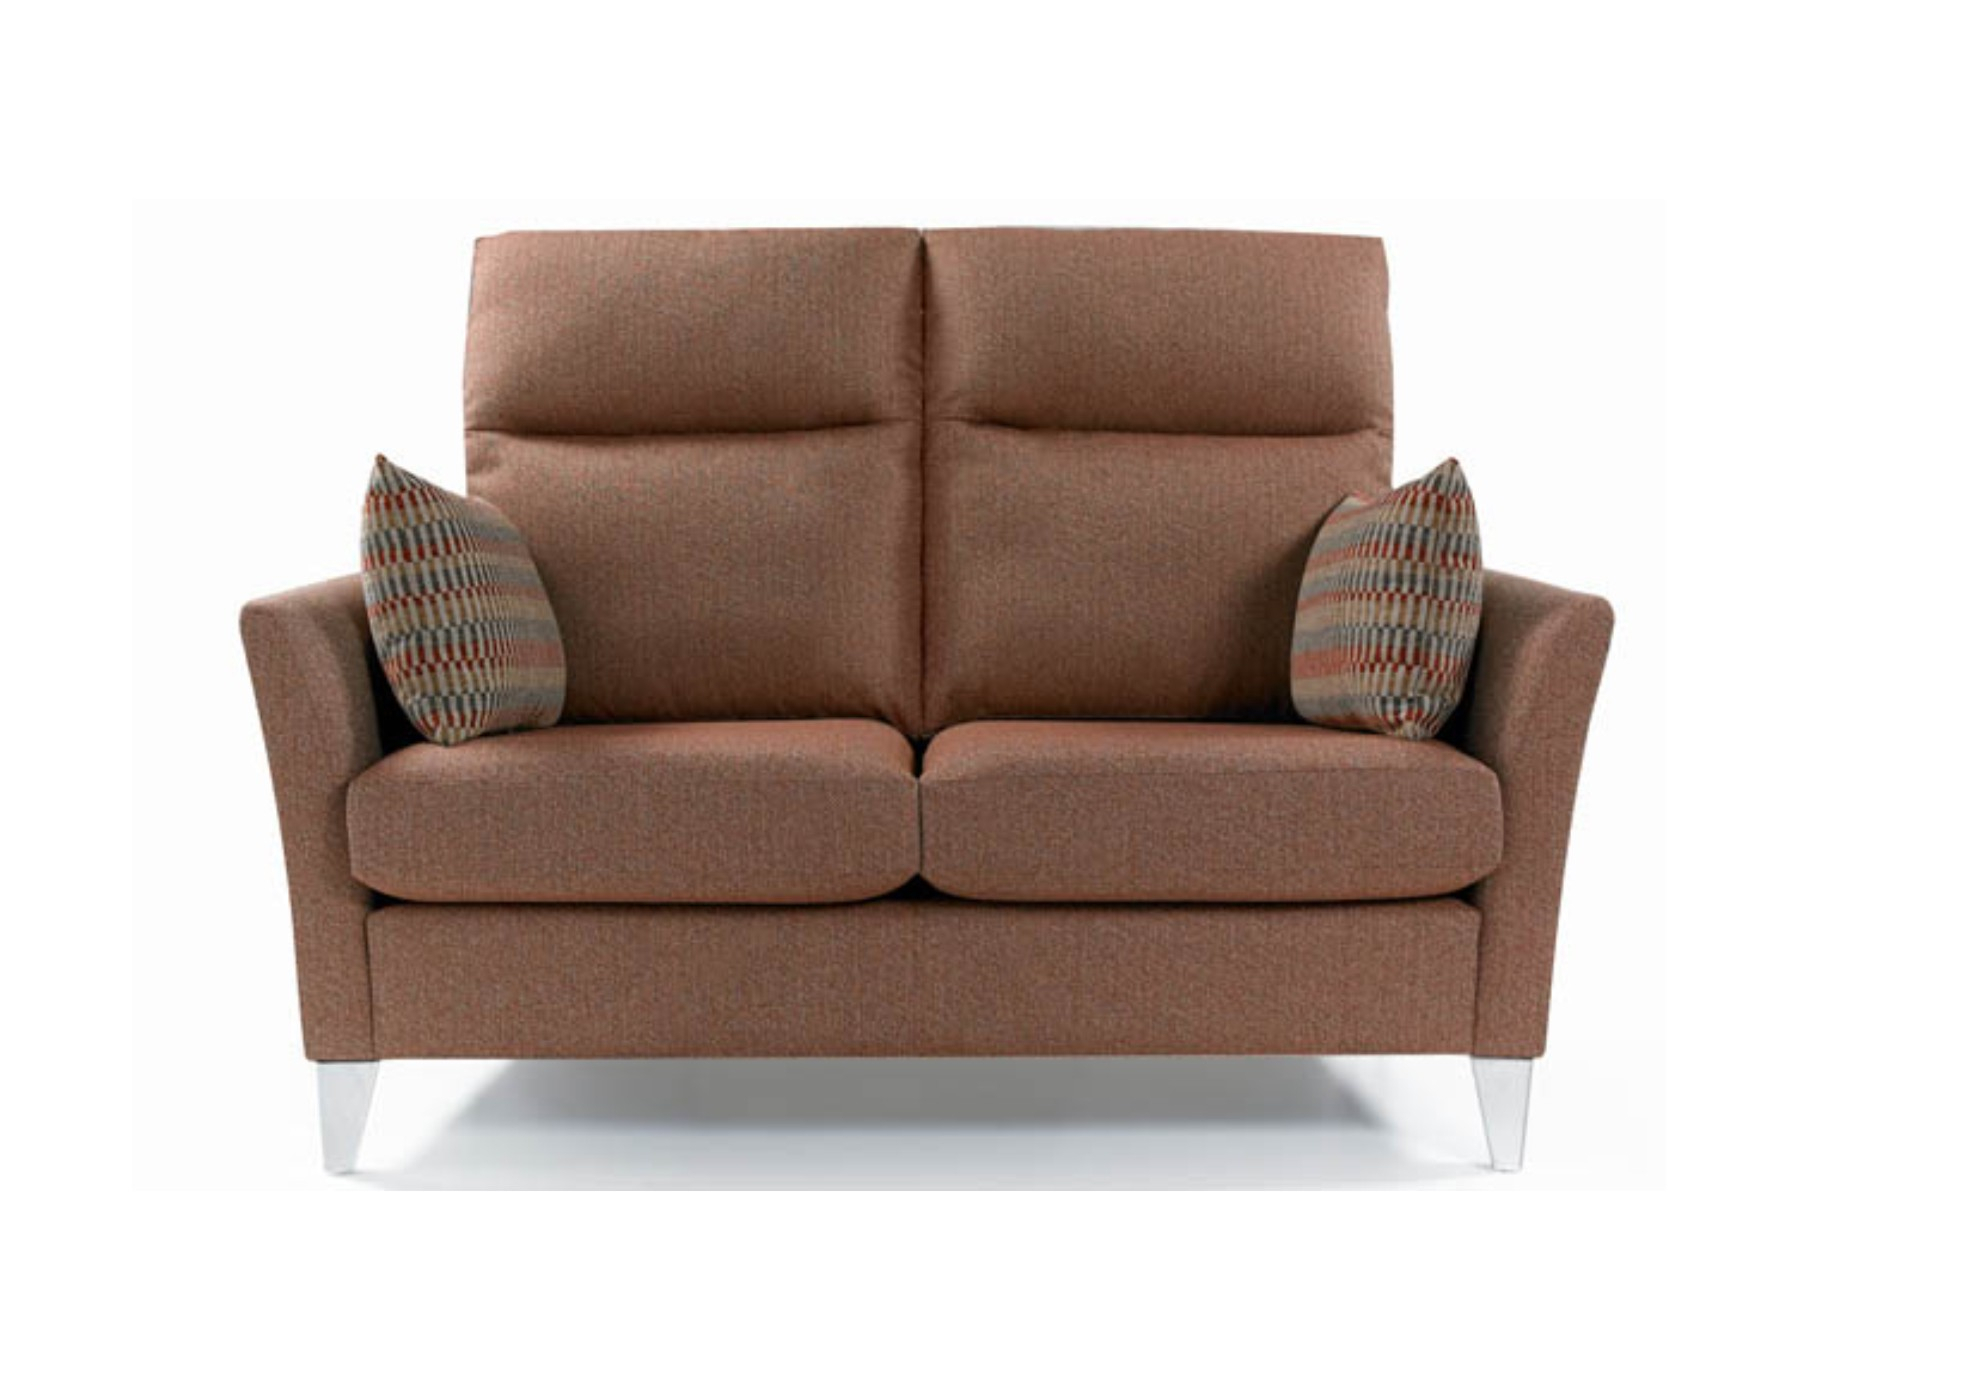 Milo 2 Seater High Back Sofa Contemporary Styling With Luxurious Comfort Inside Milo Sofa Chairs (Image 11 of 25)